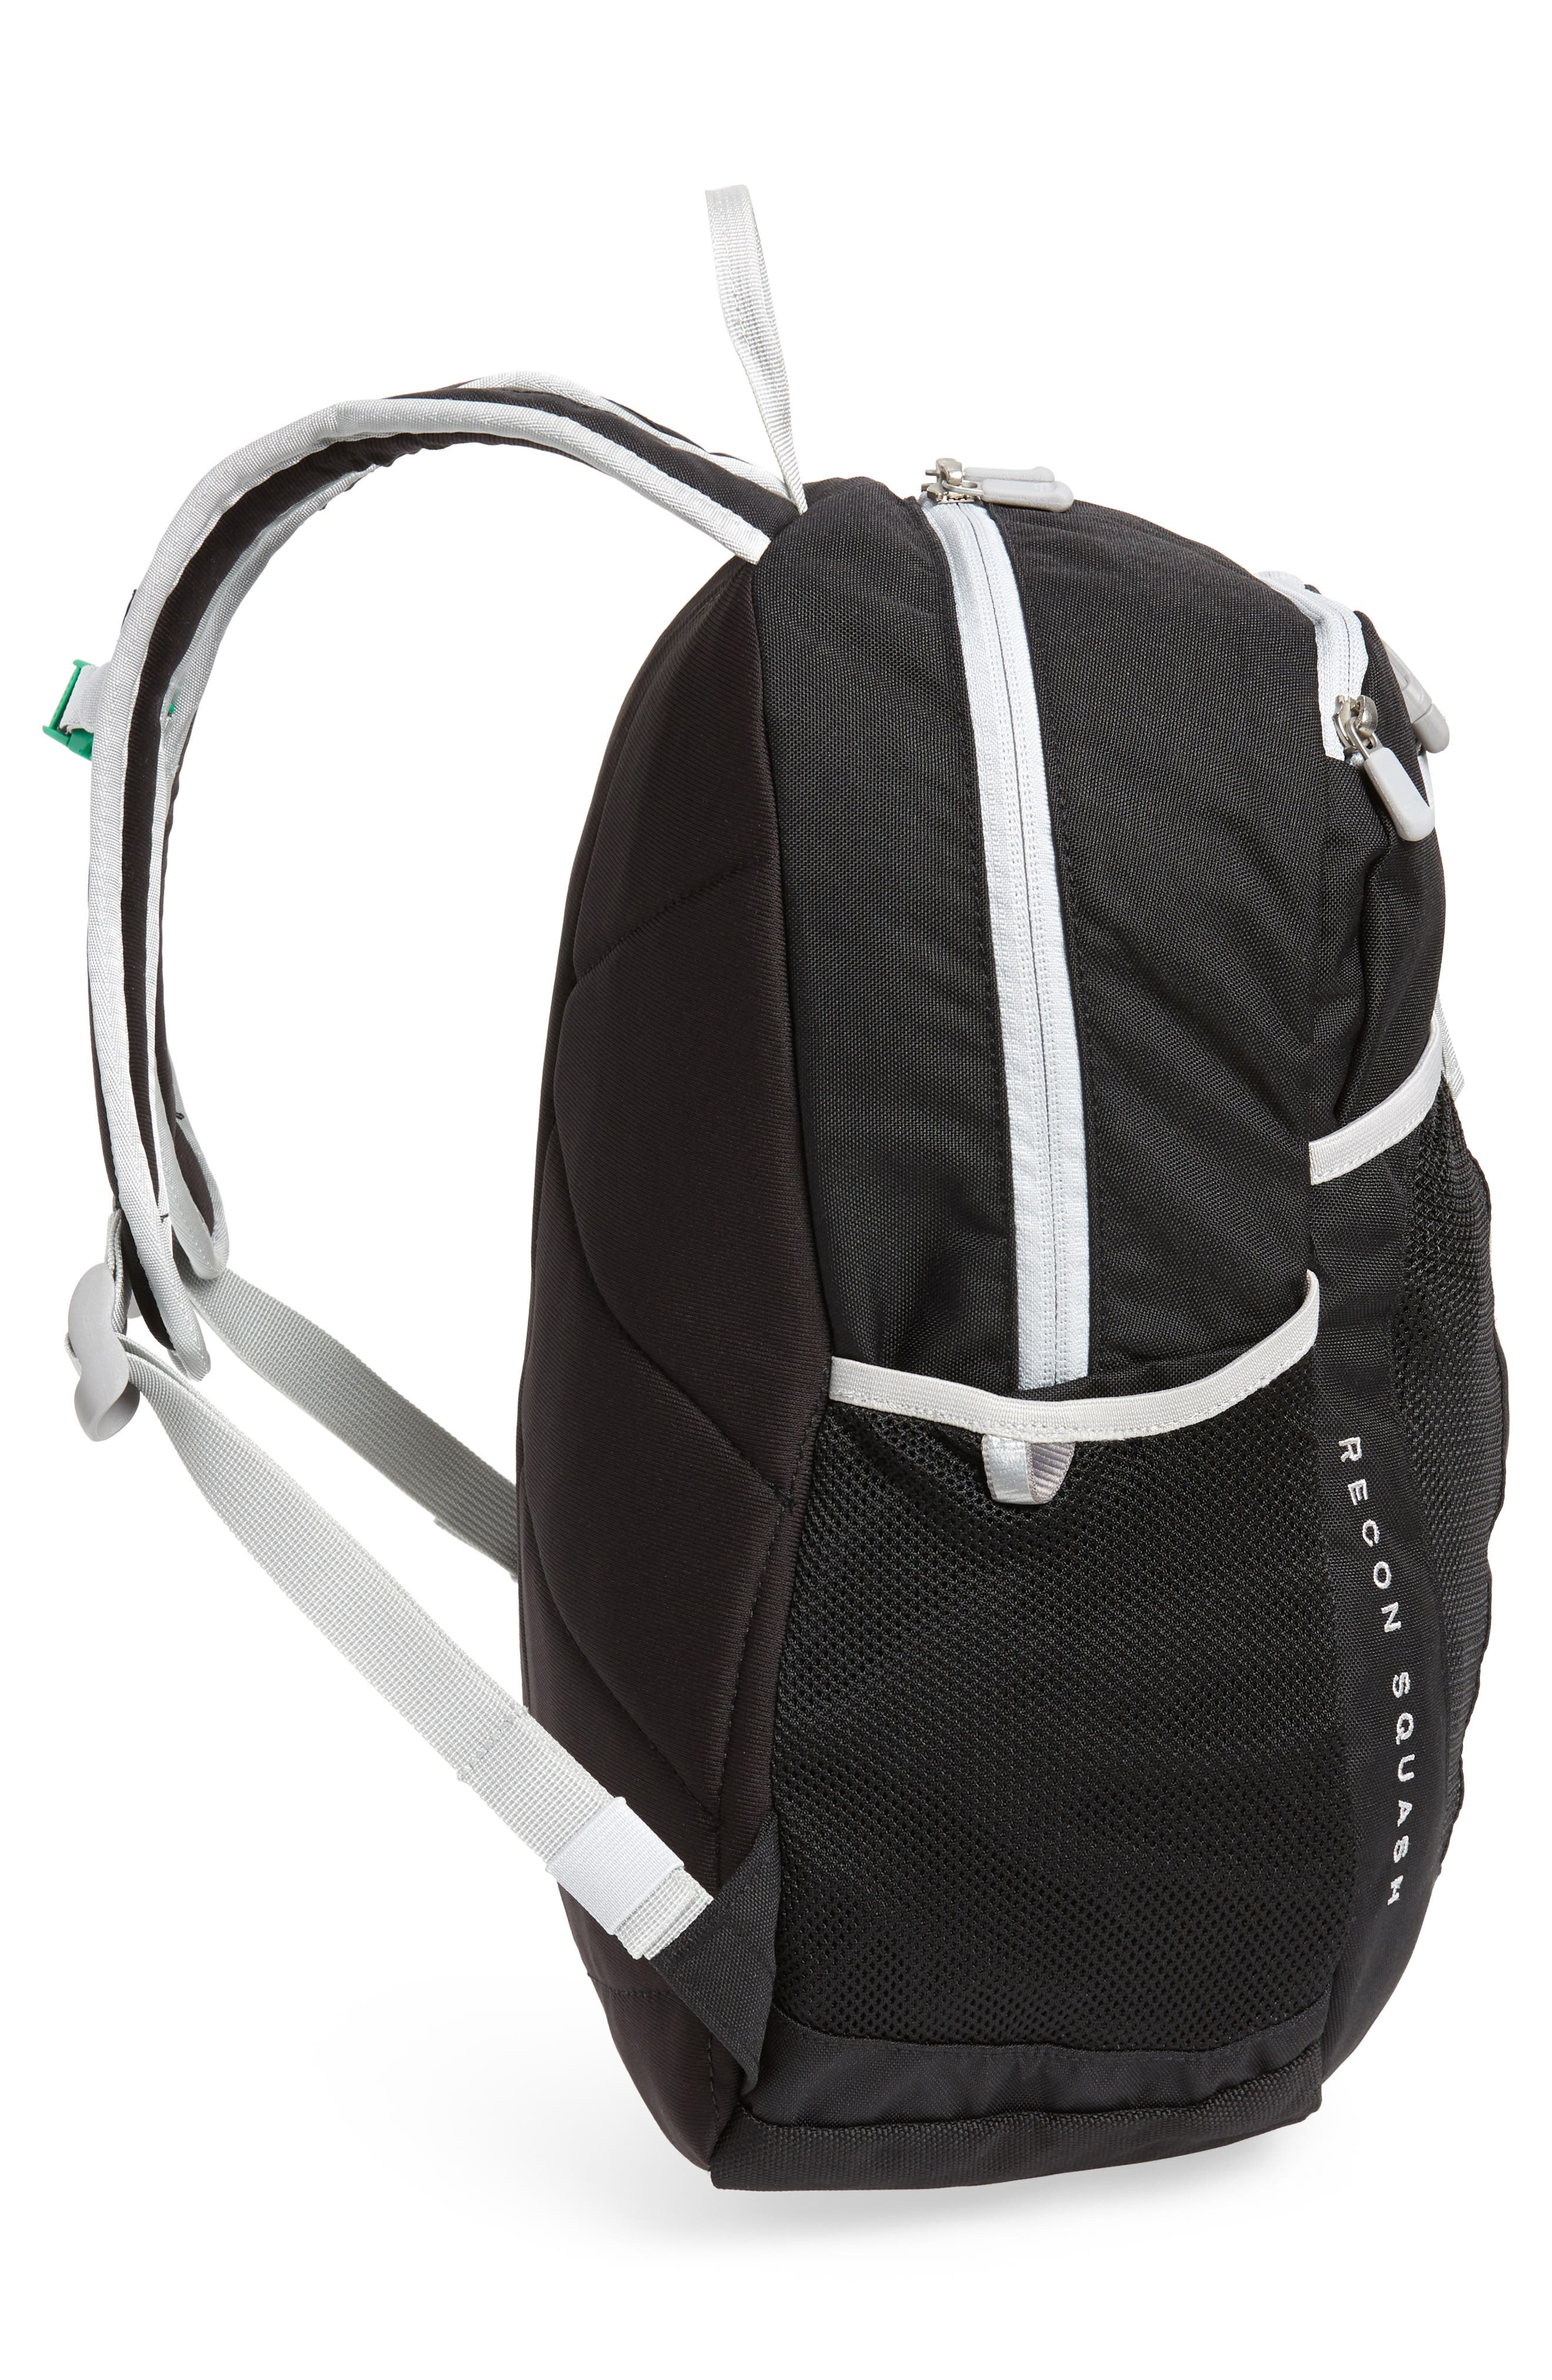 Recon Squash Backpack,                             Alternate thumbnail 3, color,                             Tnf Black/ High Rise Grey